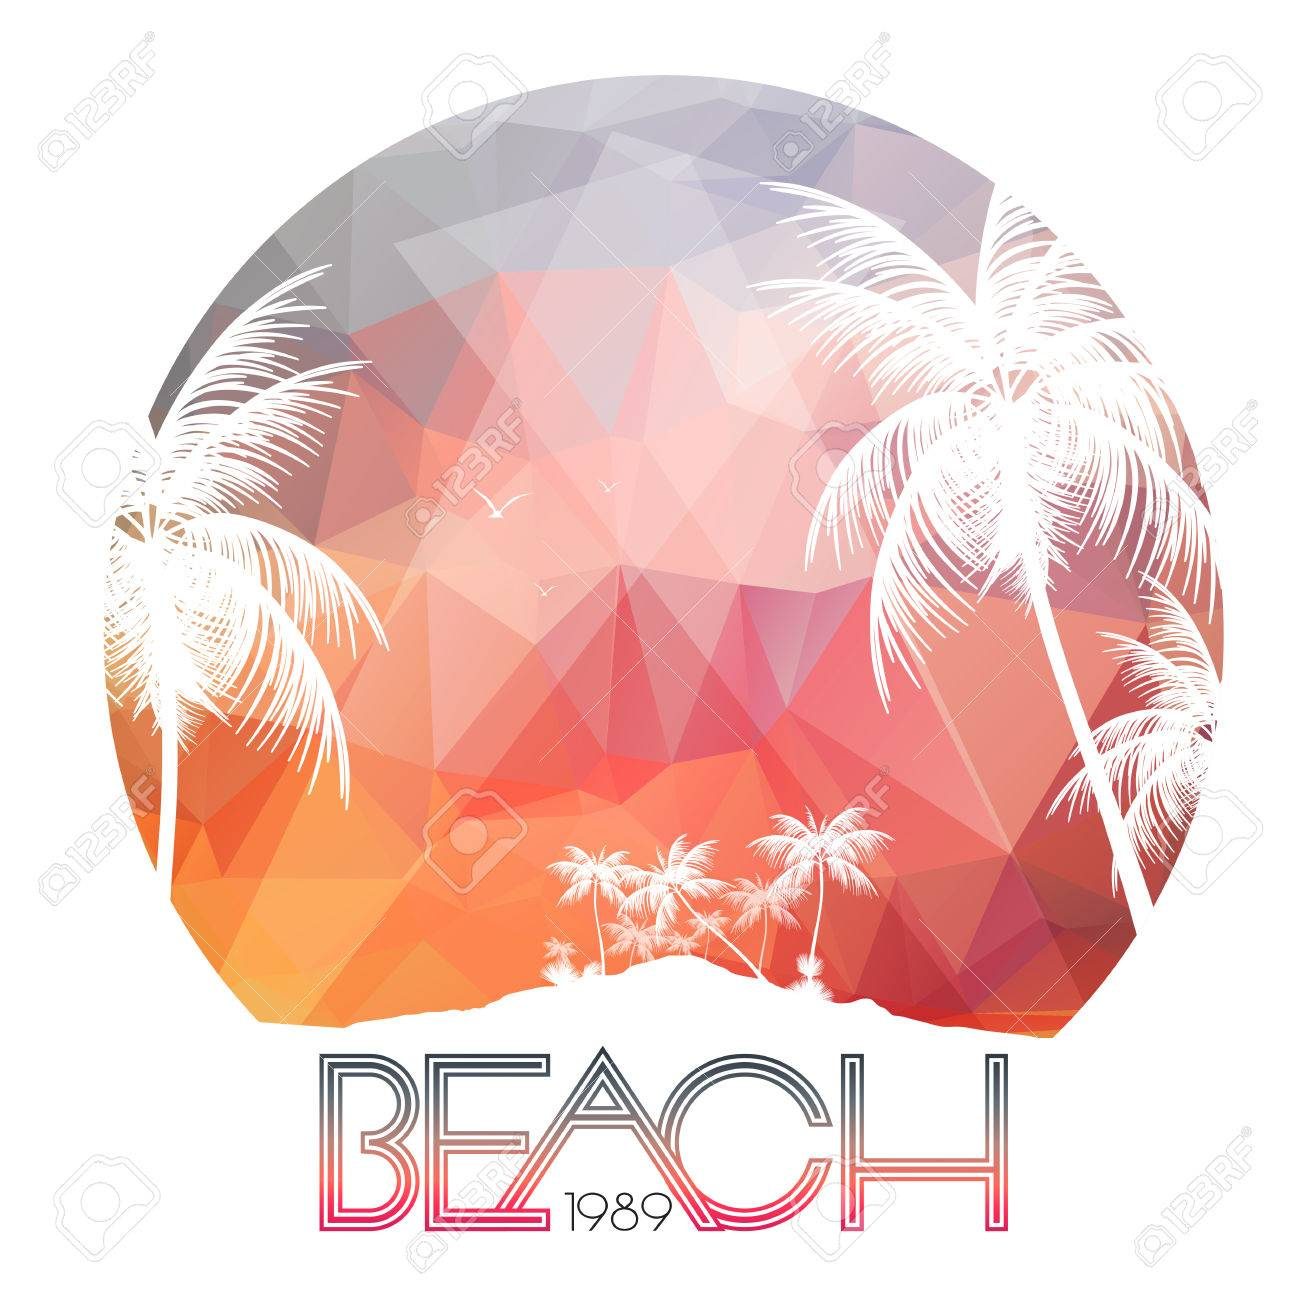 Beach Party Poster with Tropical Island and Palm Trees - Vector Illustration - 38112329